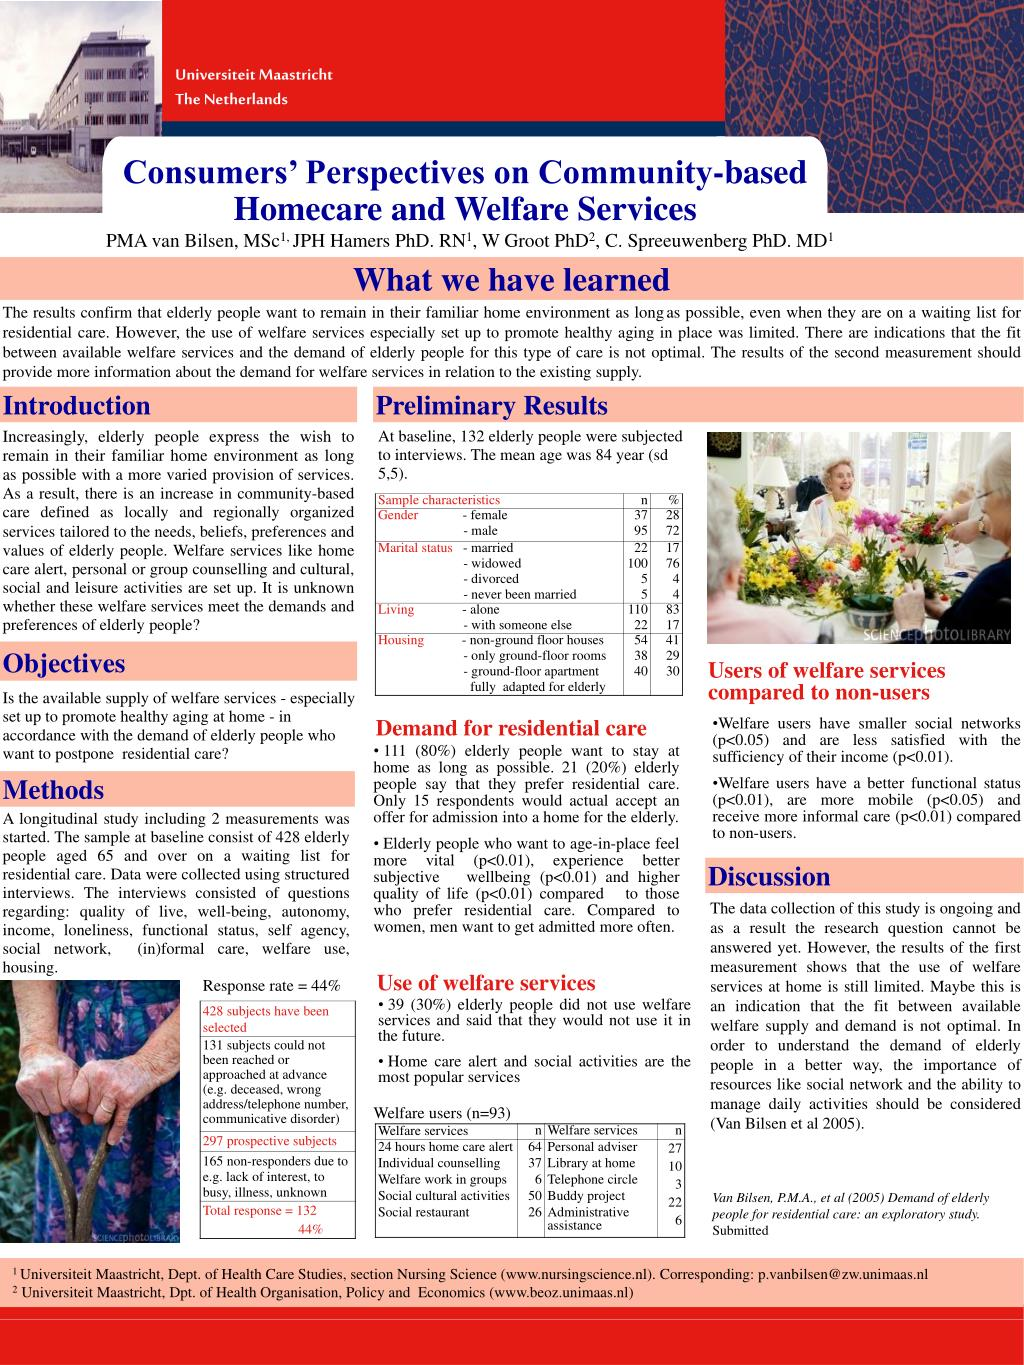 Consumers' Perspectives on Community-based Homecare and Welfare Services